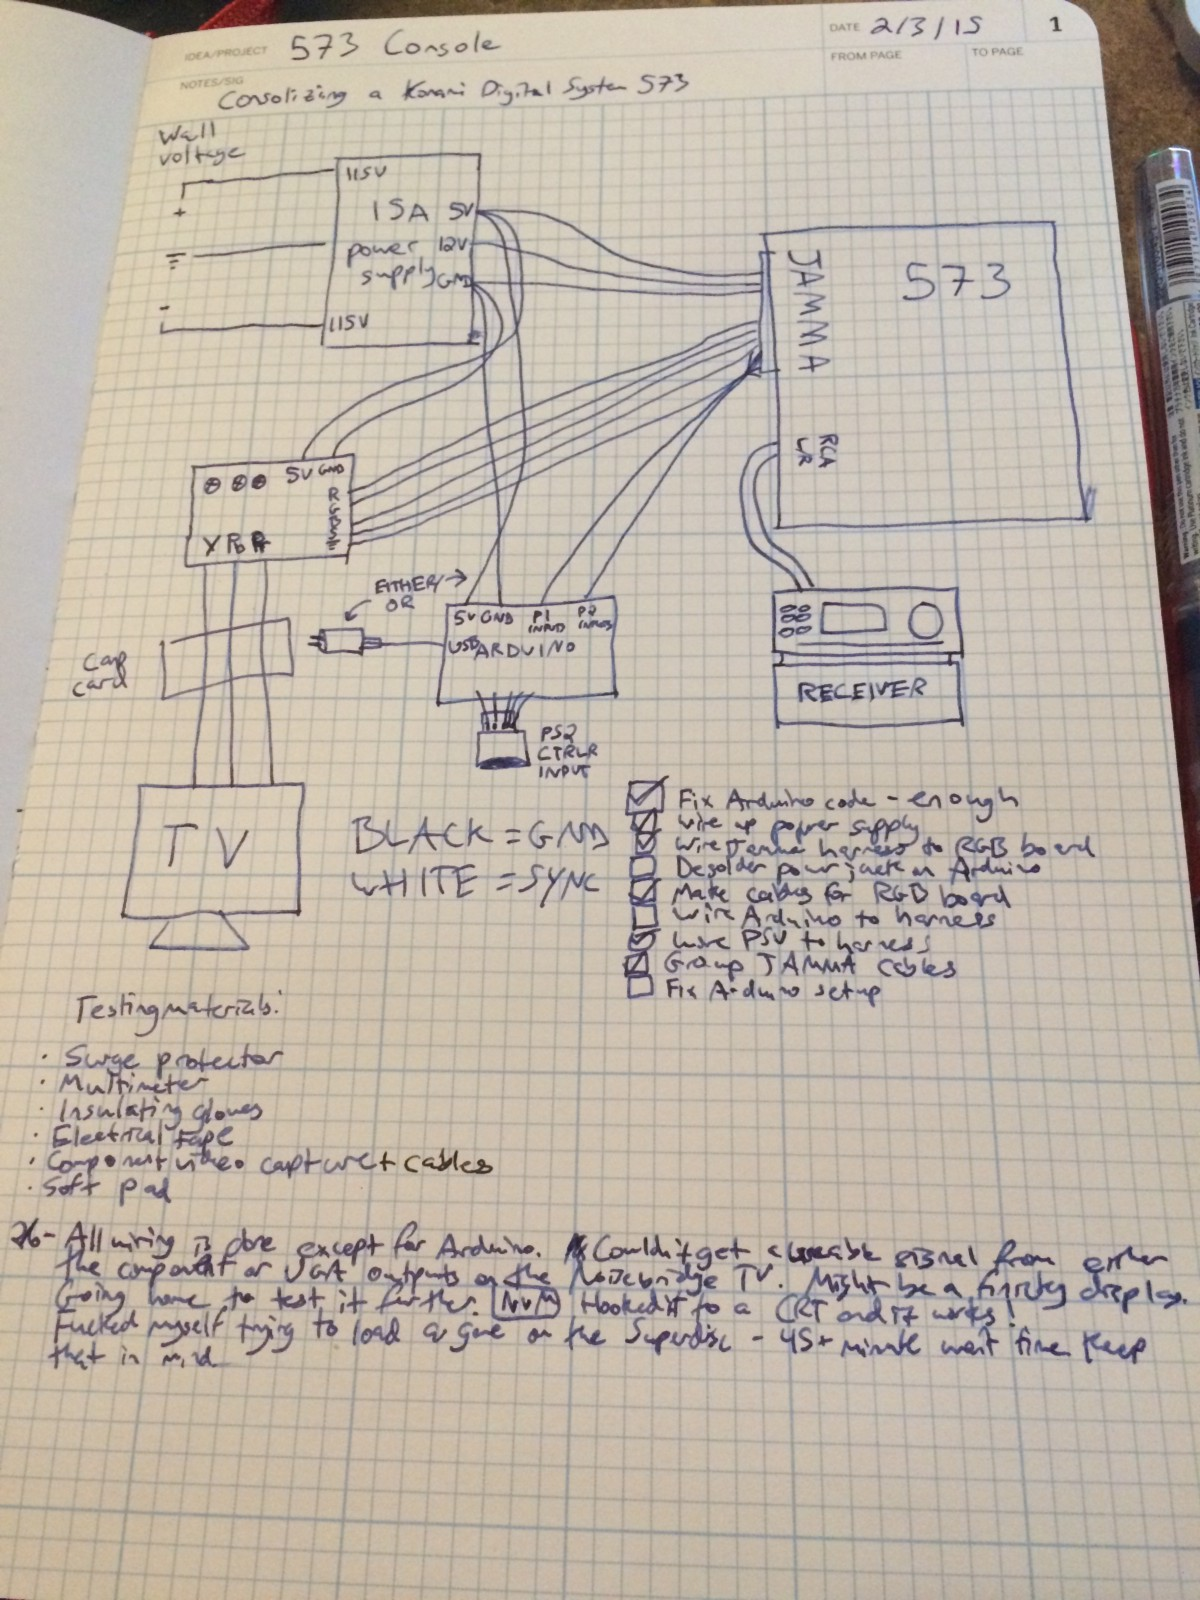 My super detailed schematic & notes for the project.